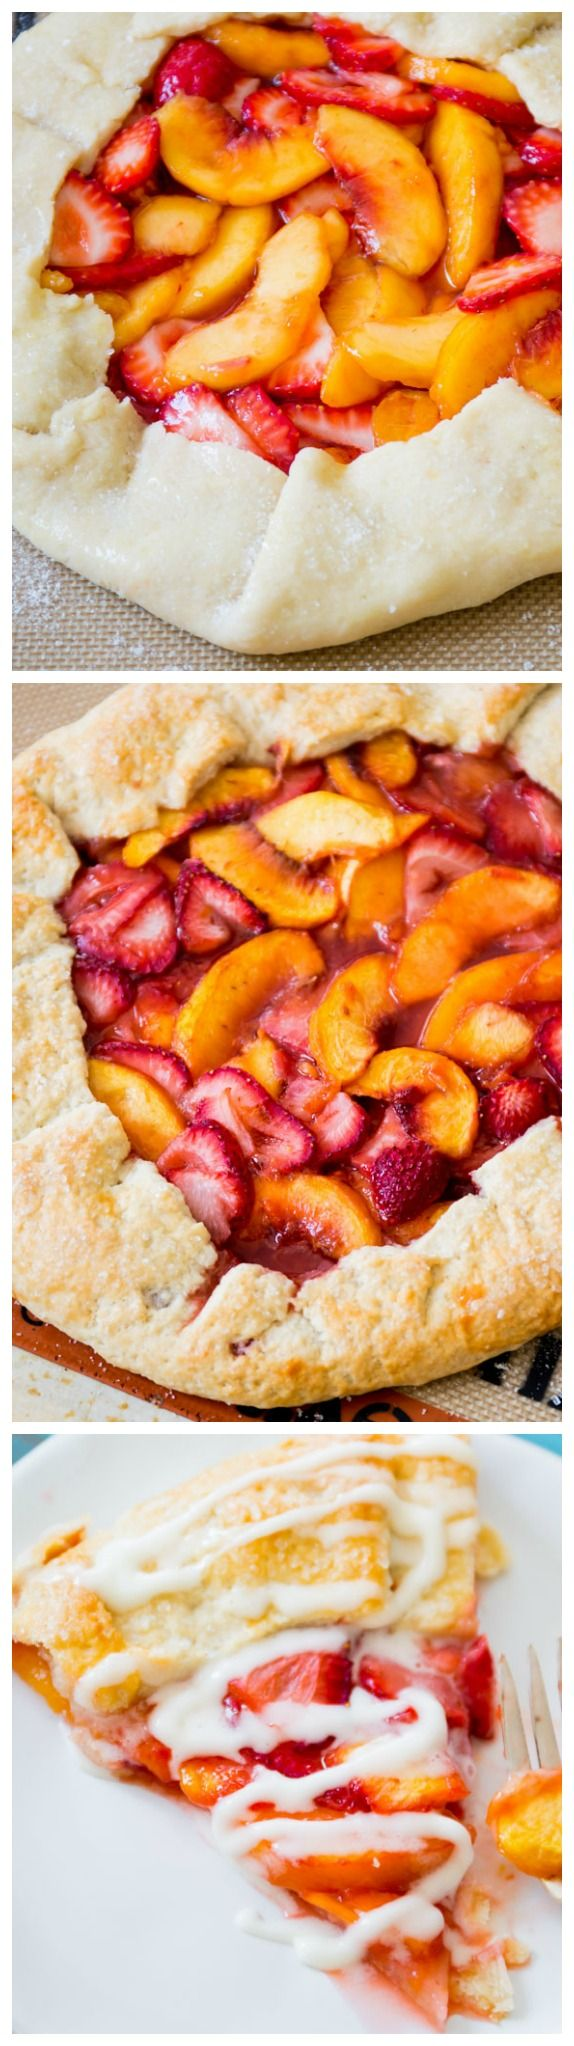 Rustic Strawberry Peach Tart Recipe. Classic Rustic Strawberry Peach Galette Recipe using Summer's Finest Juicy Fruits. #Sweet #Juicy #Fruits #Rustic #Strawberry #Peach #Tart #Galette #Recipes